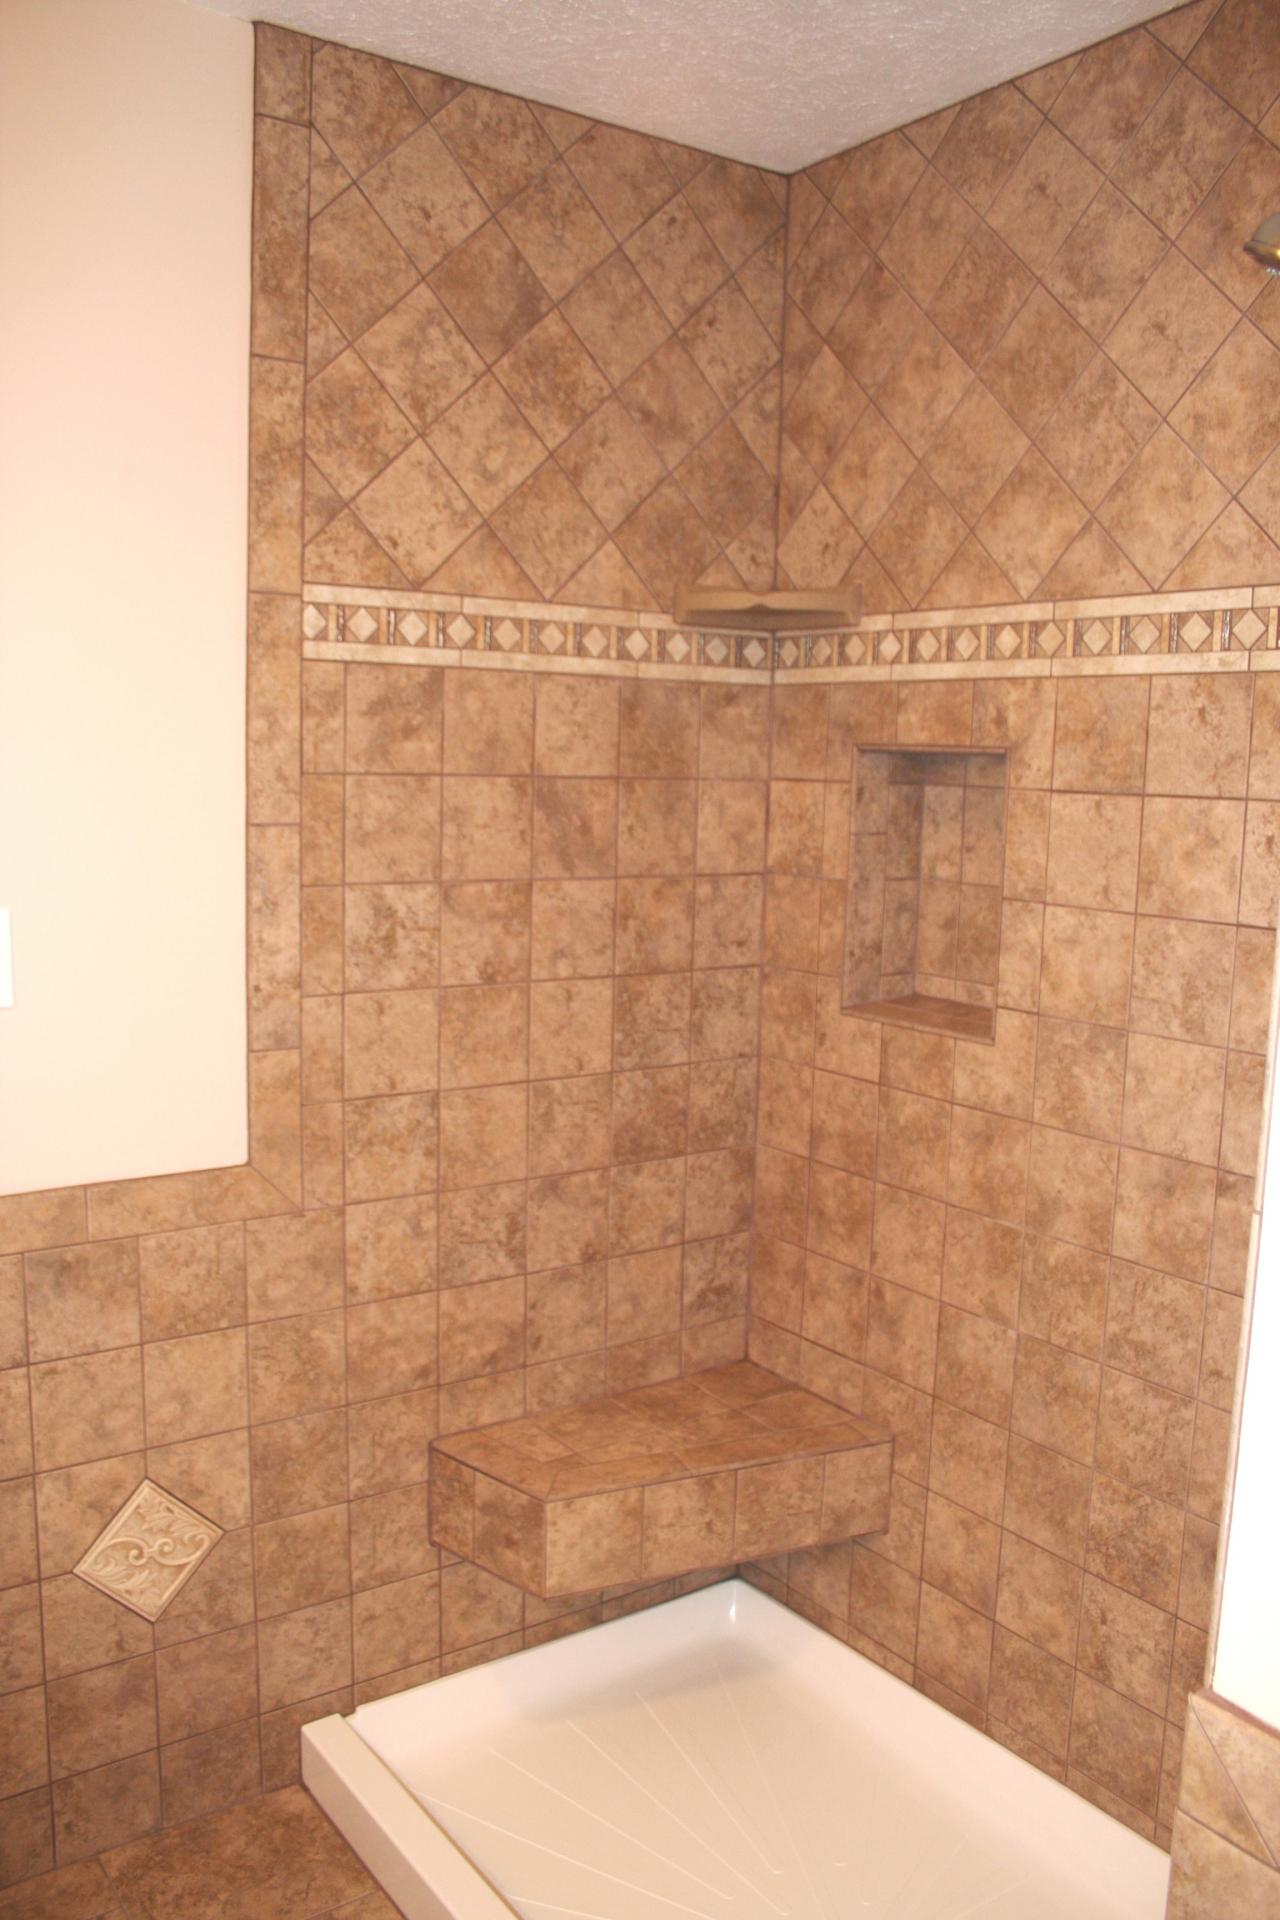 Nest Homes Construction - Floor and Wall Tile Designs